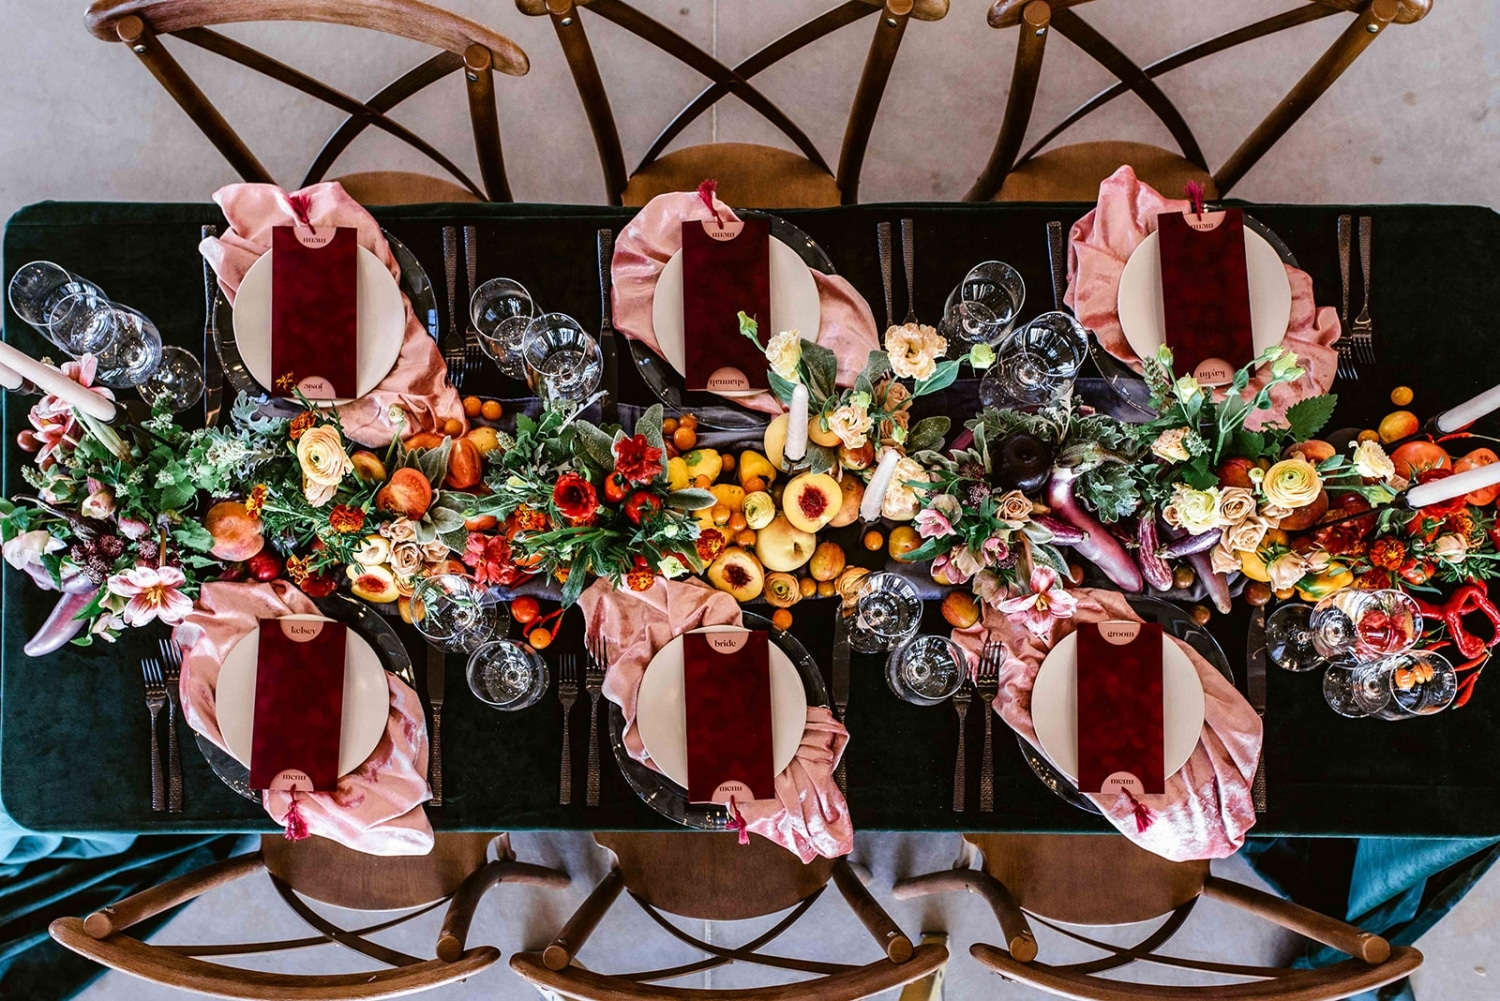 top view of a banquet table with crimson red napkins